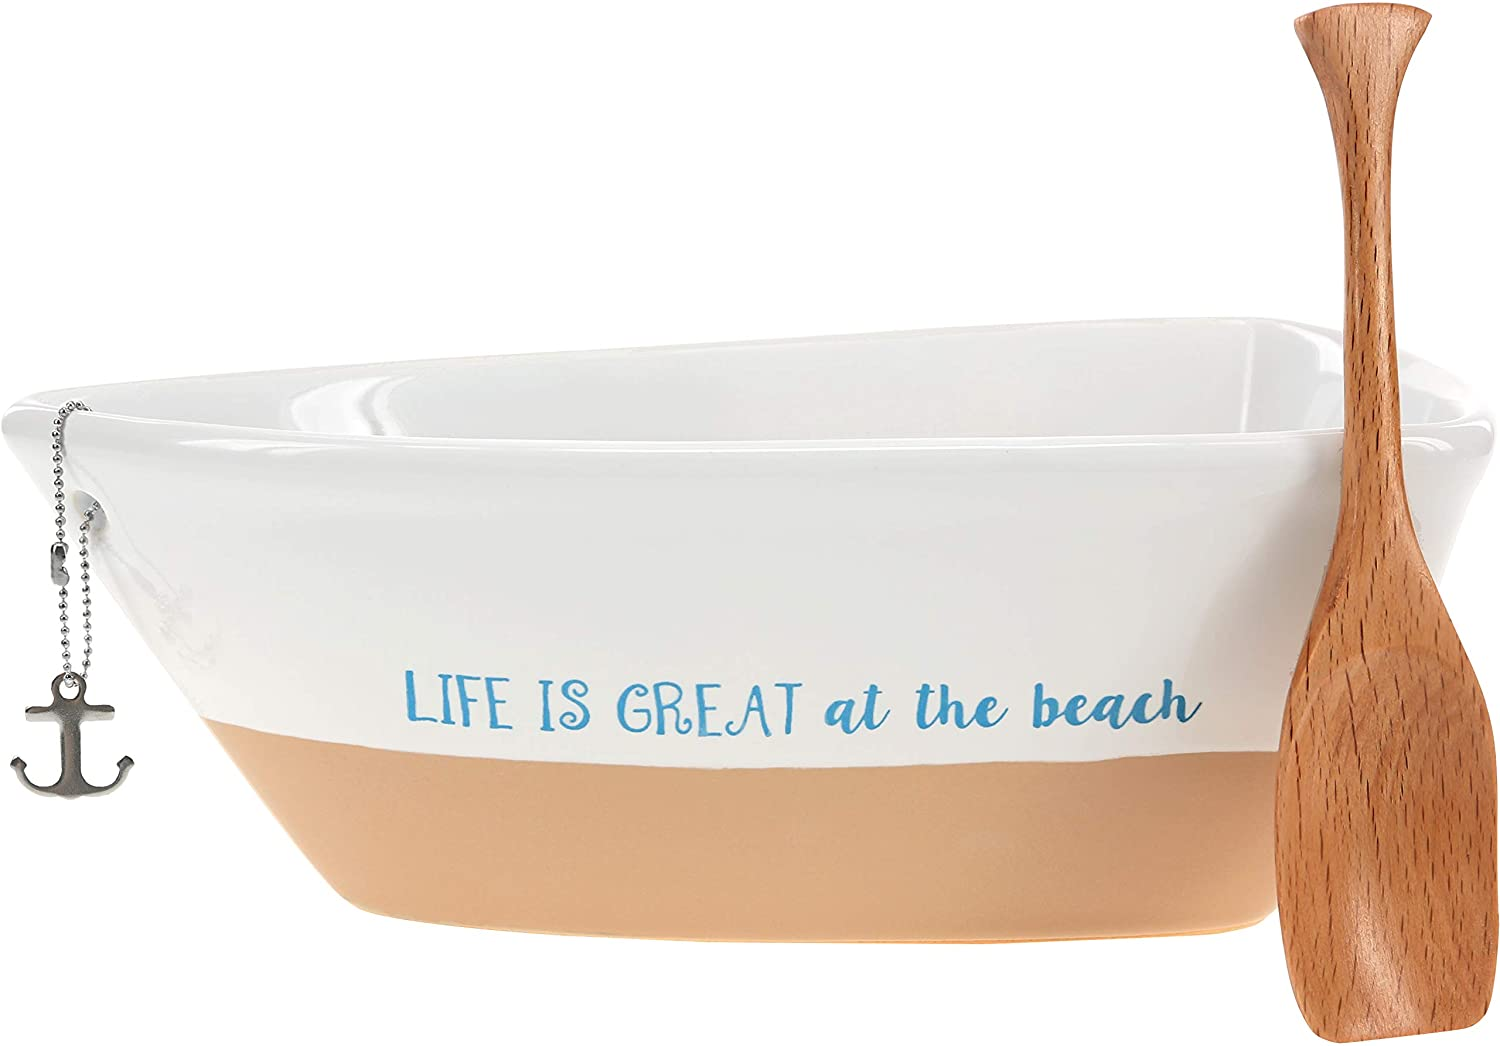 Pavilion Gift Company 12 Oz Stoneware Boat Dish Server With Wooden Oar Scoop Life Is At The Beach, Beige